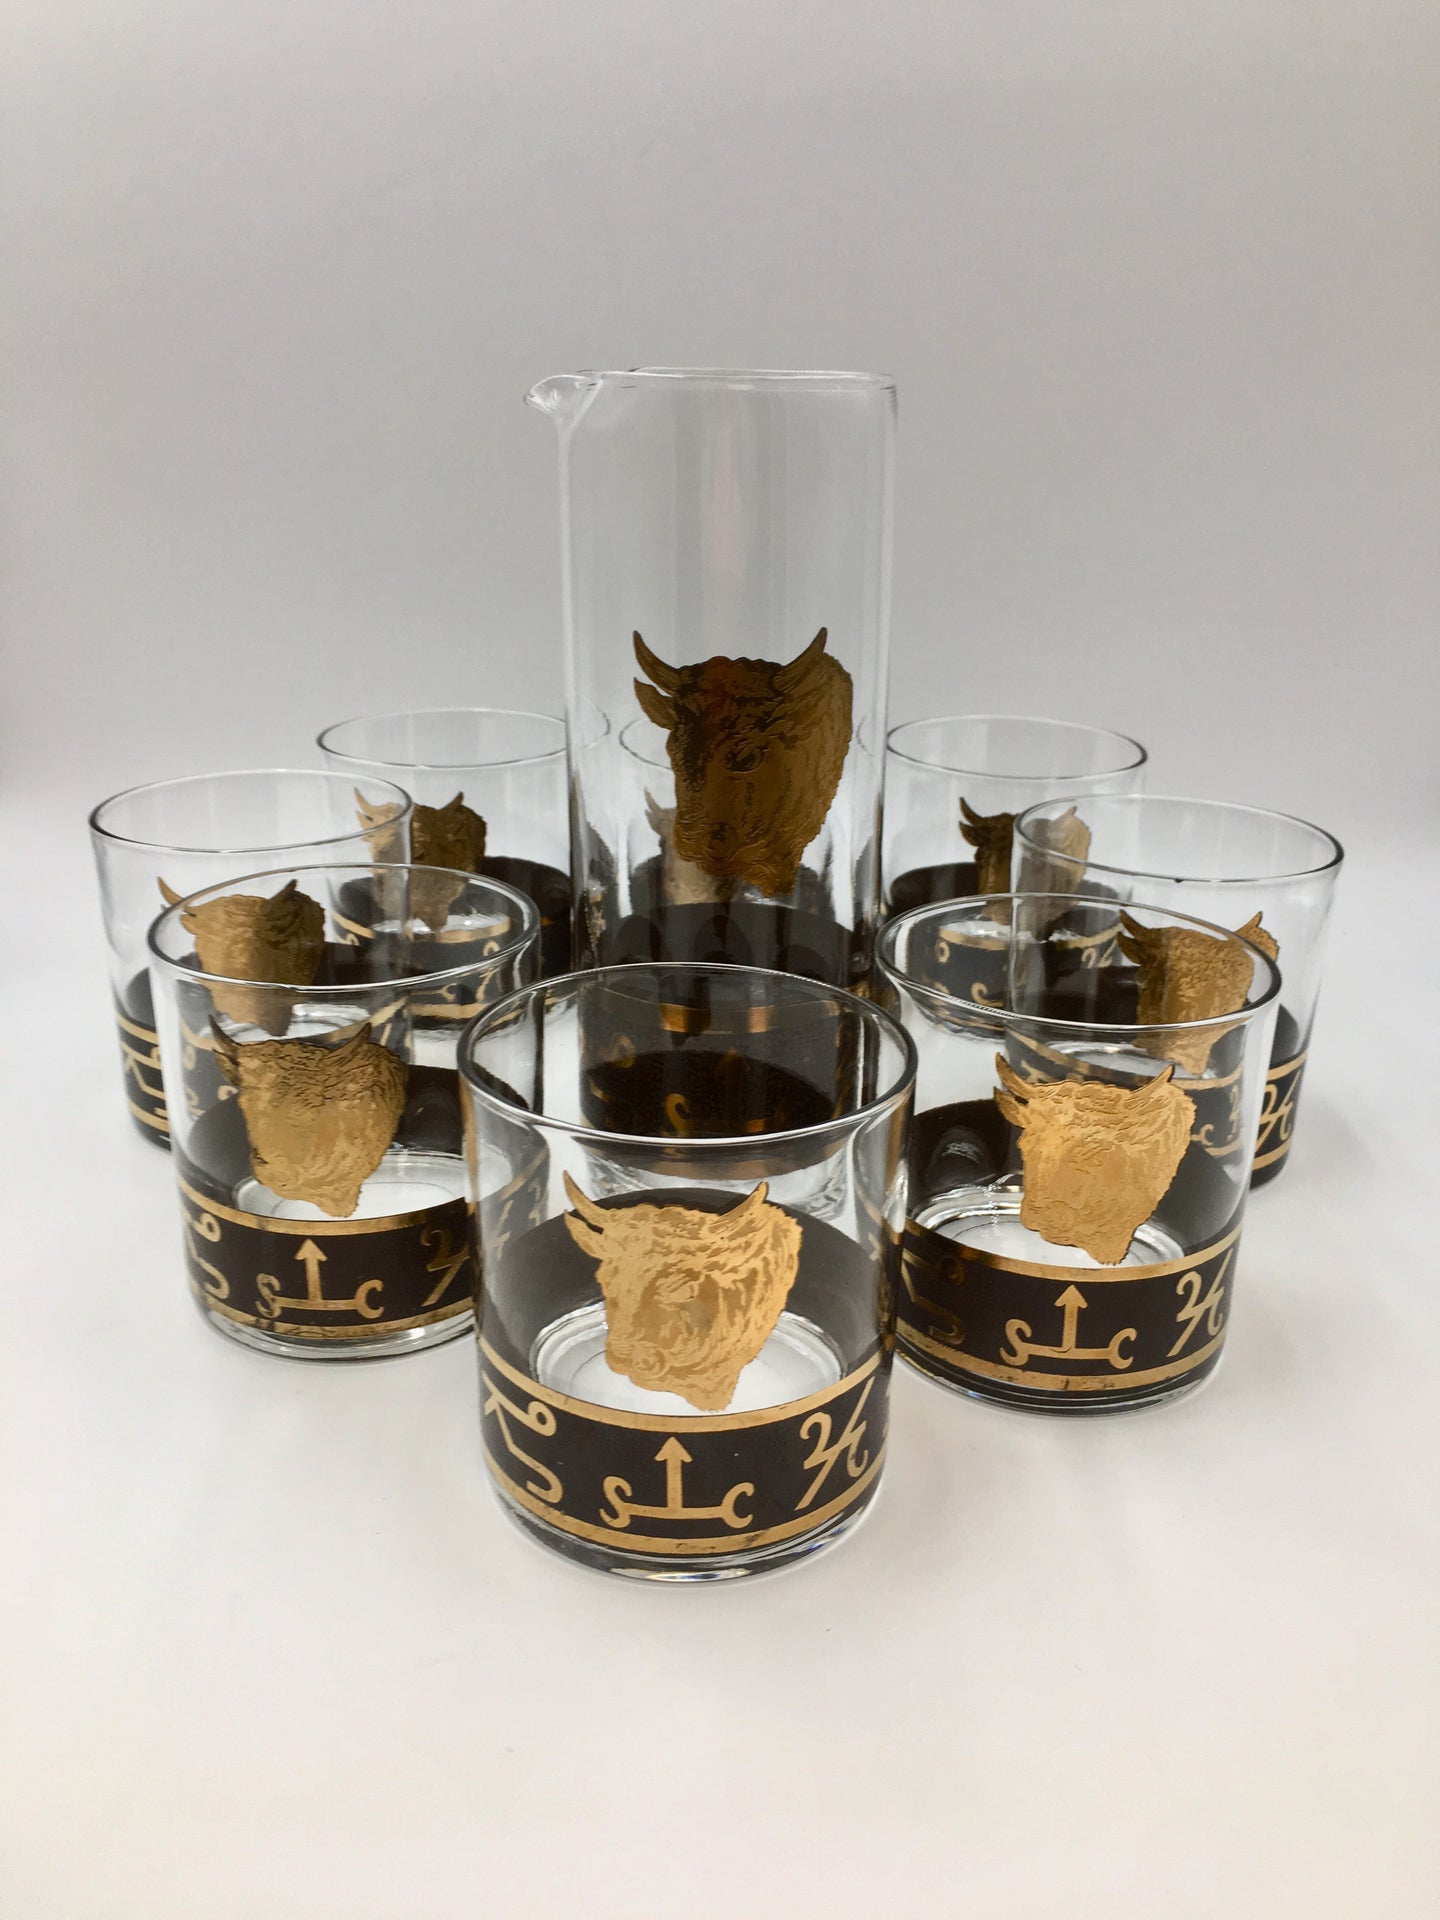 Vintage Cocktail Set of Western Ranch Barware with Gold Bulls